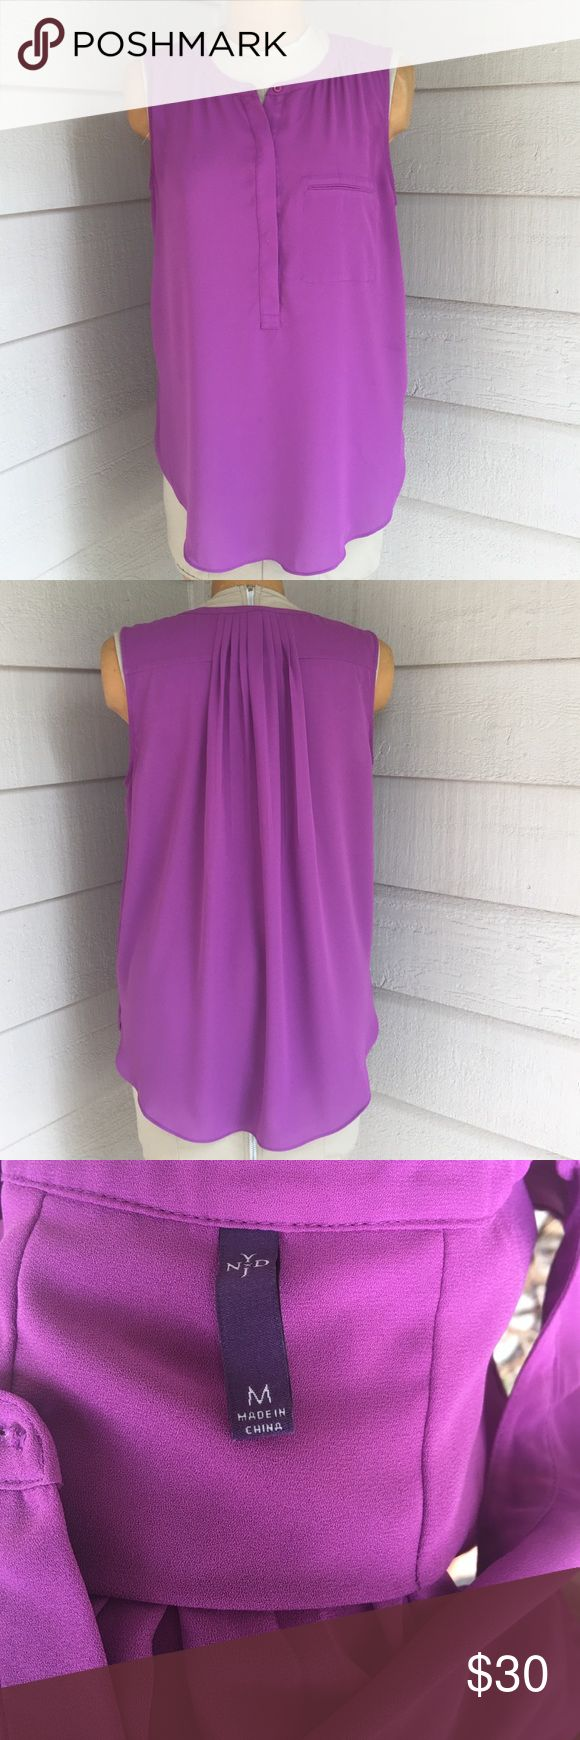 NYDJ not your daughters jeans Medium purple tank Nordstrom not your mothers jeans medium sleeveless pleated back tank top chiffon blouse NYDJ Tops Blouses